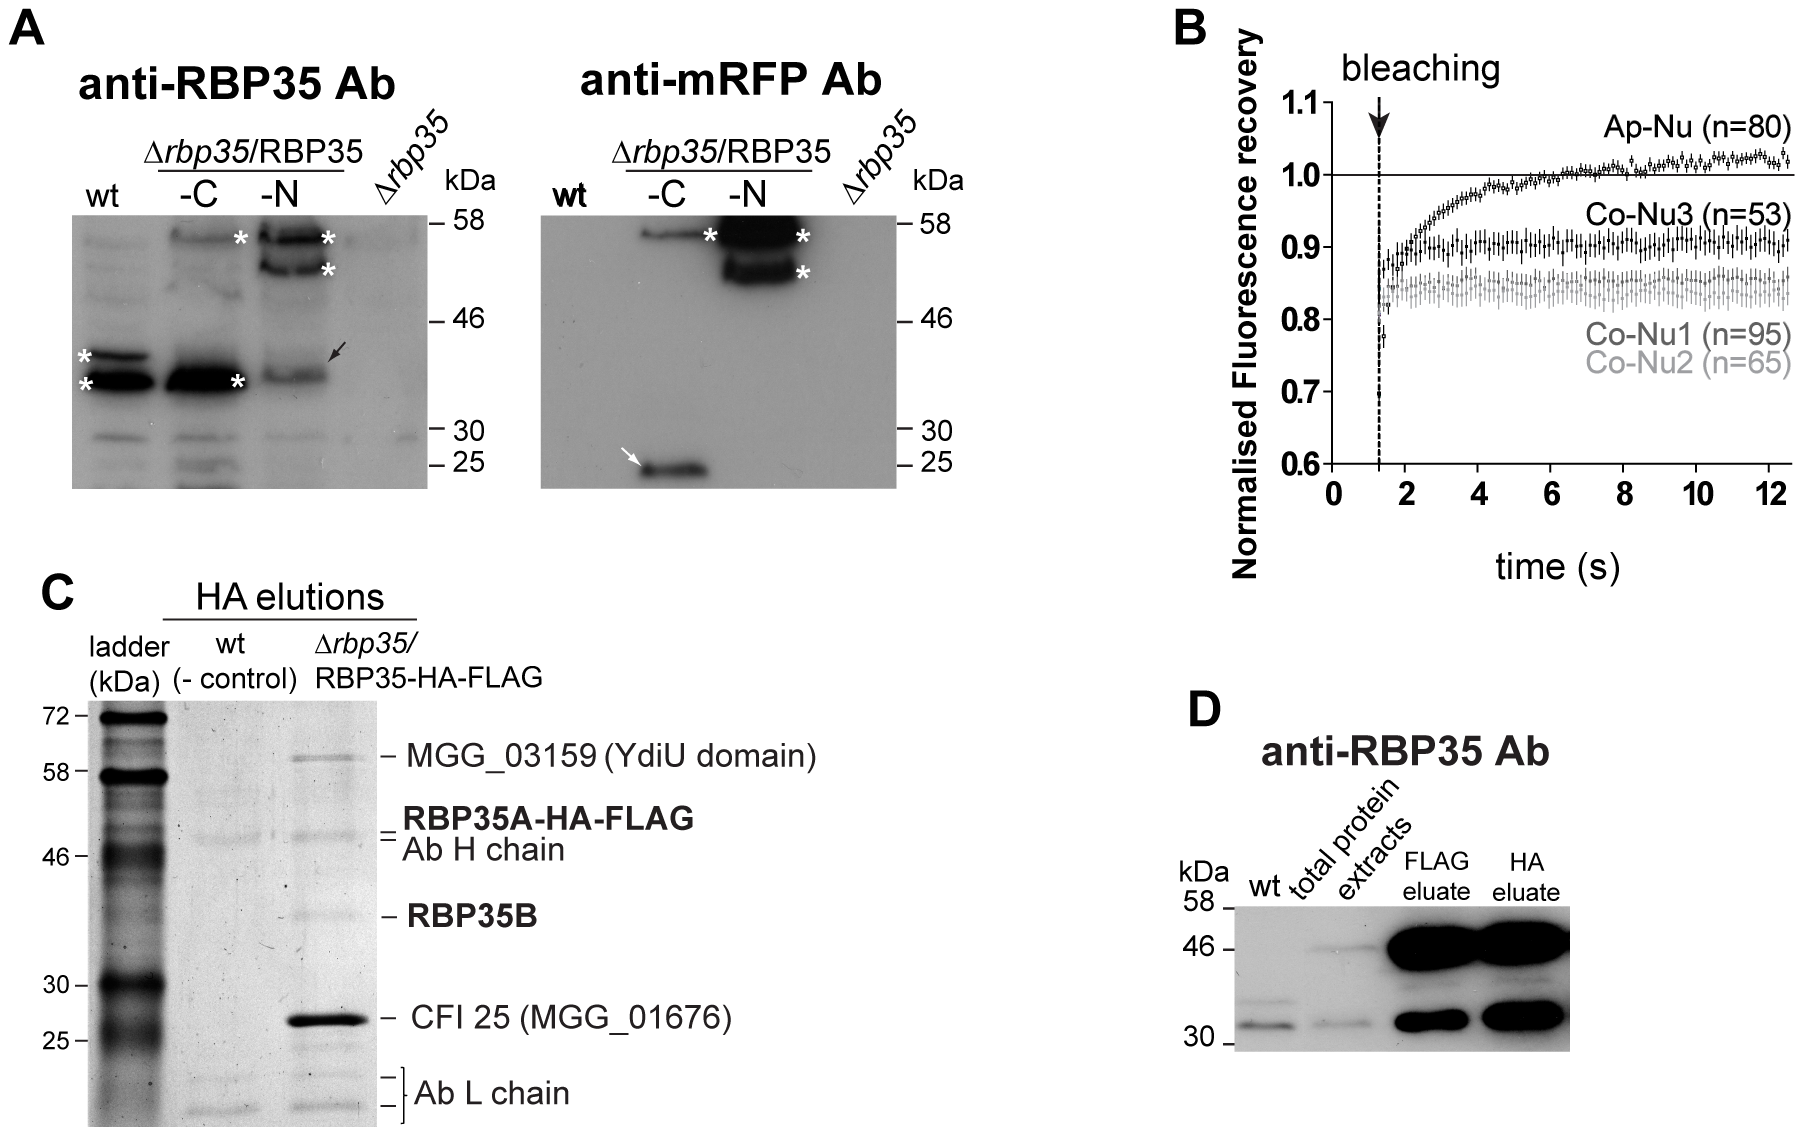 Both RBP35 isoforms showed different diffusional properties and interact with CFI25.